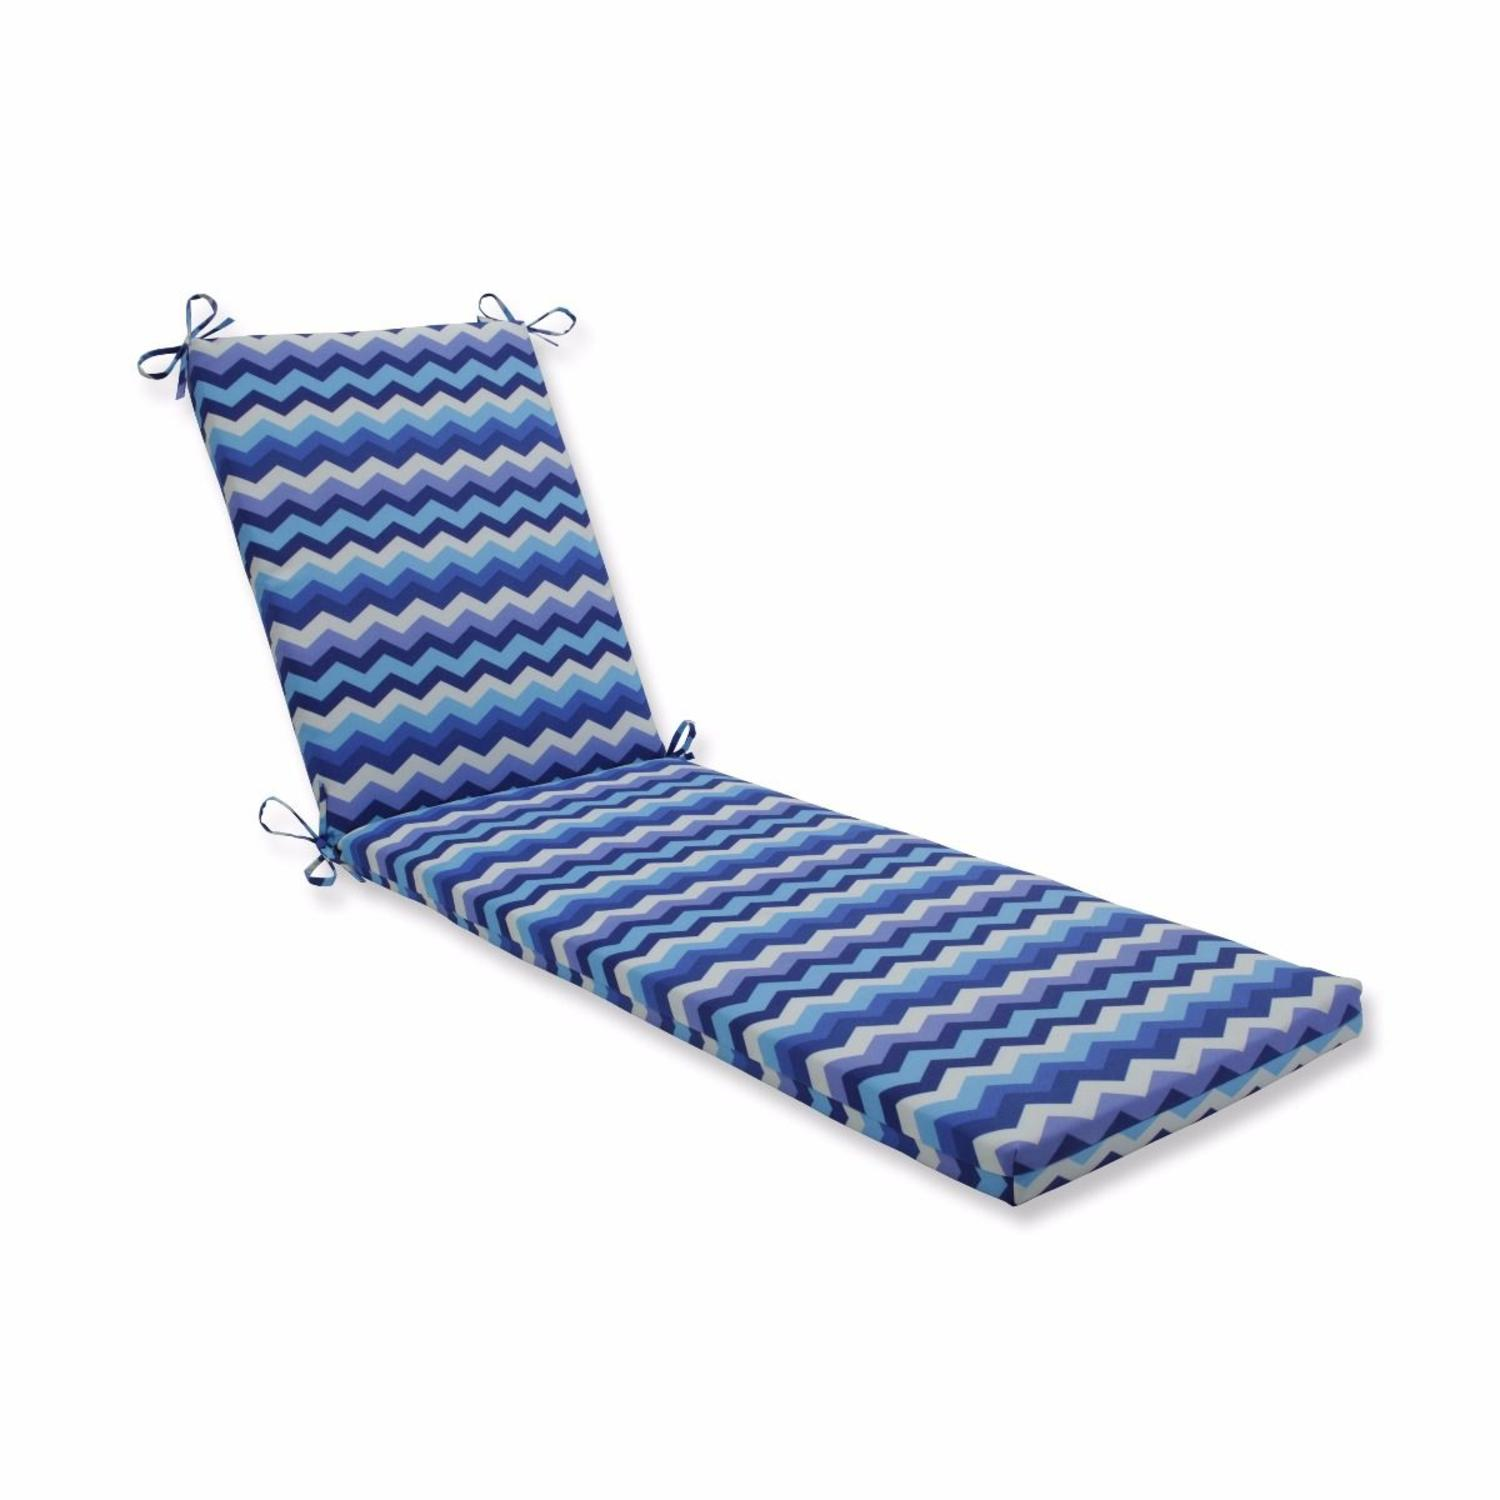 "80"" Blue UV/Fade Resistant Outdoor Patio Chaise Lounge Cushion with Ties"